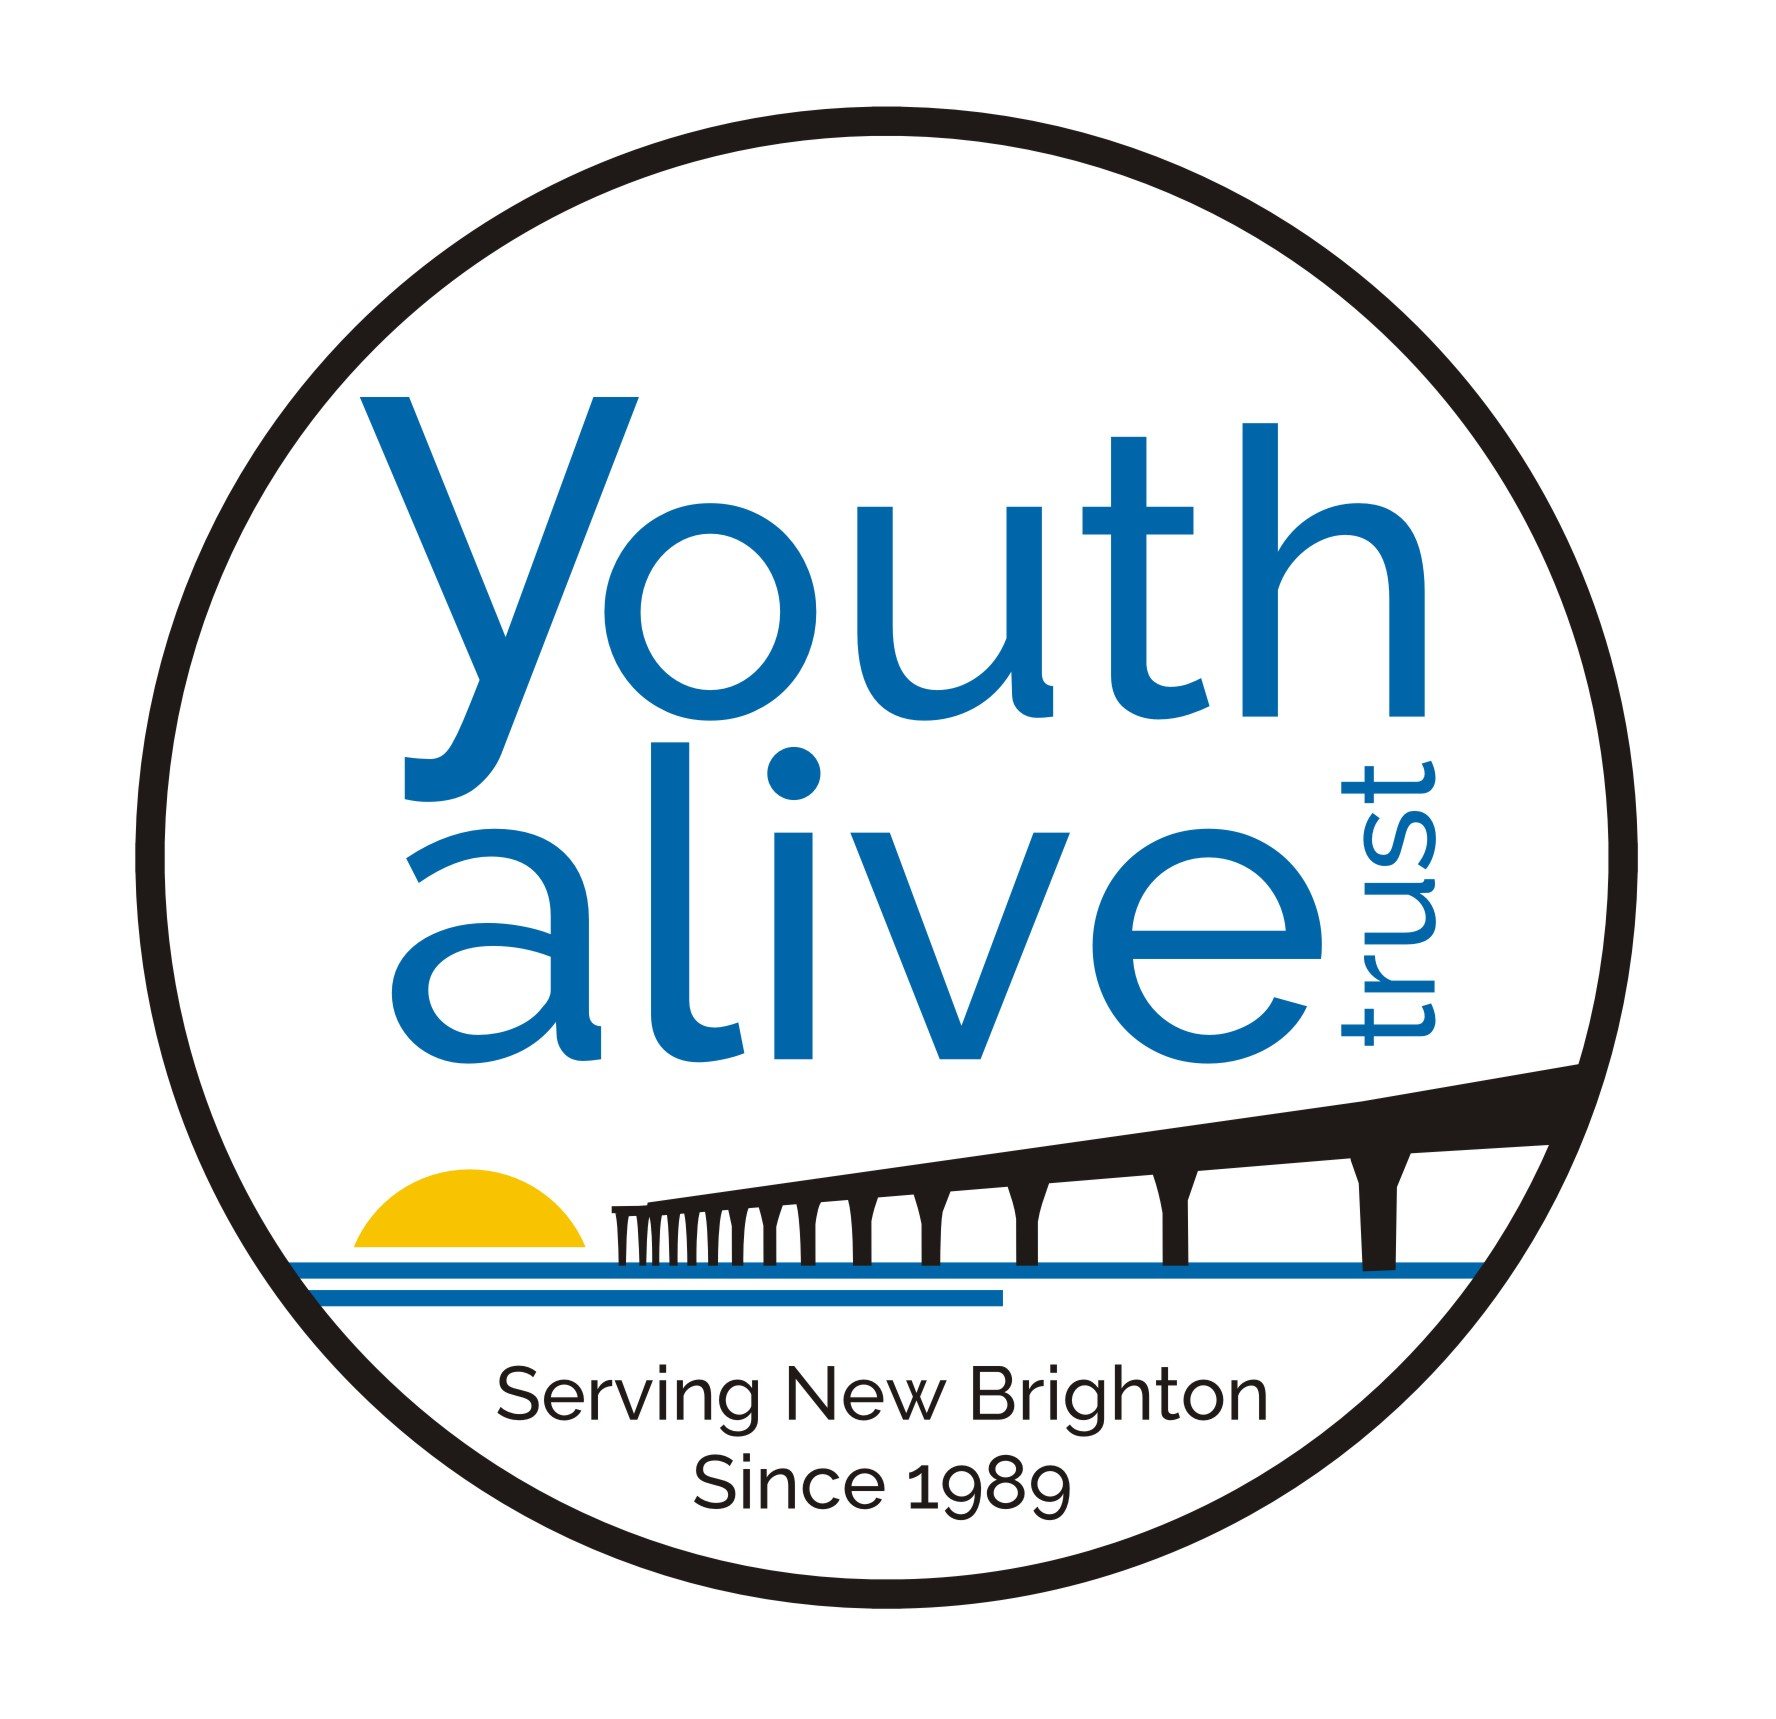 youth alive trust logo 2.jpg